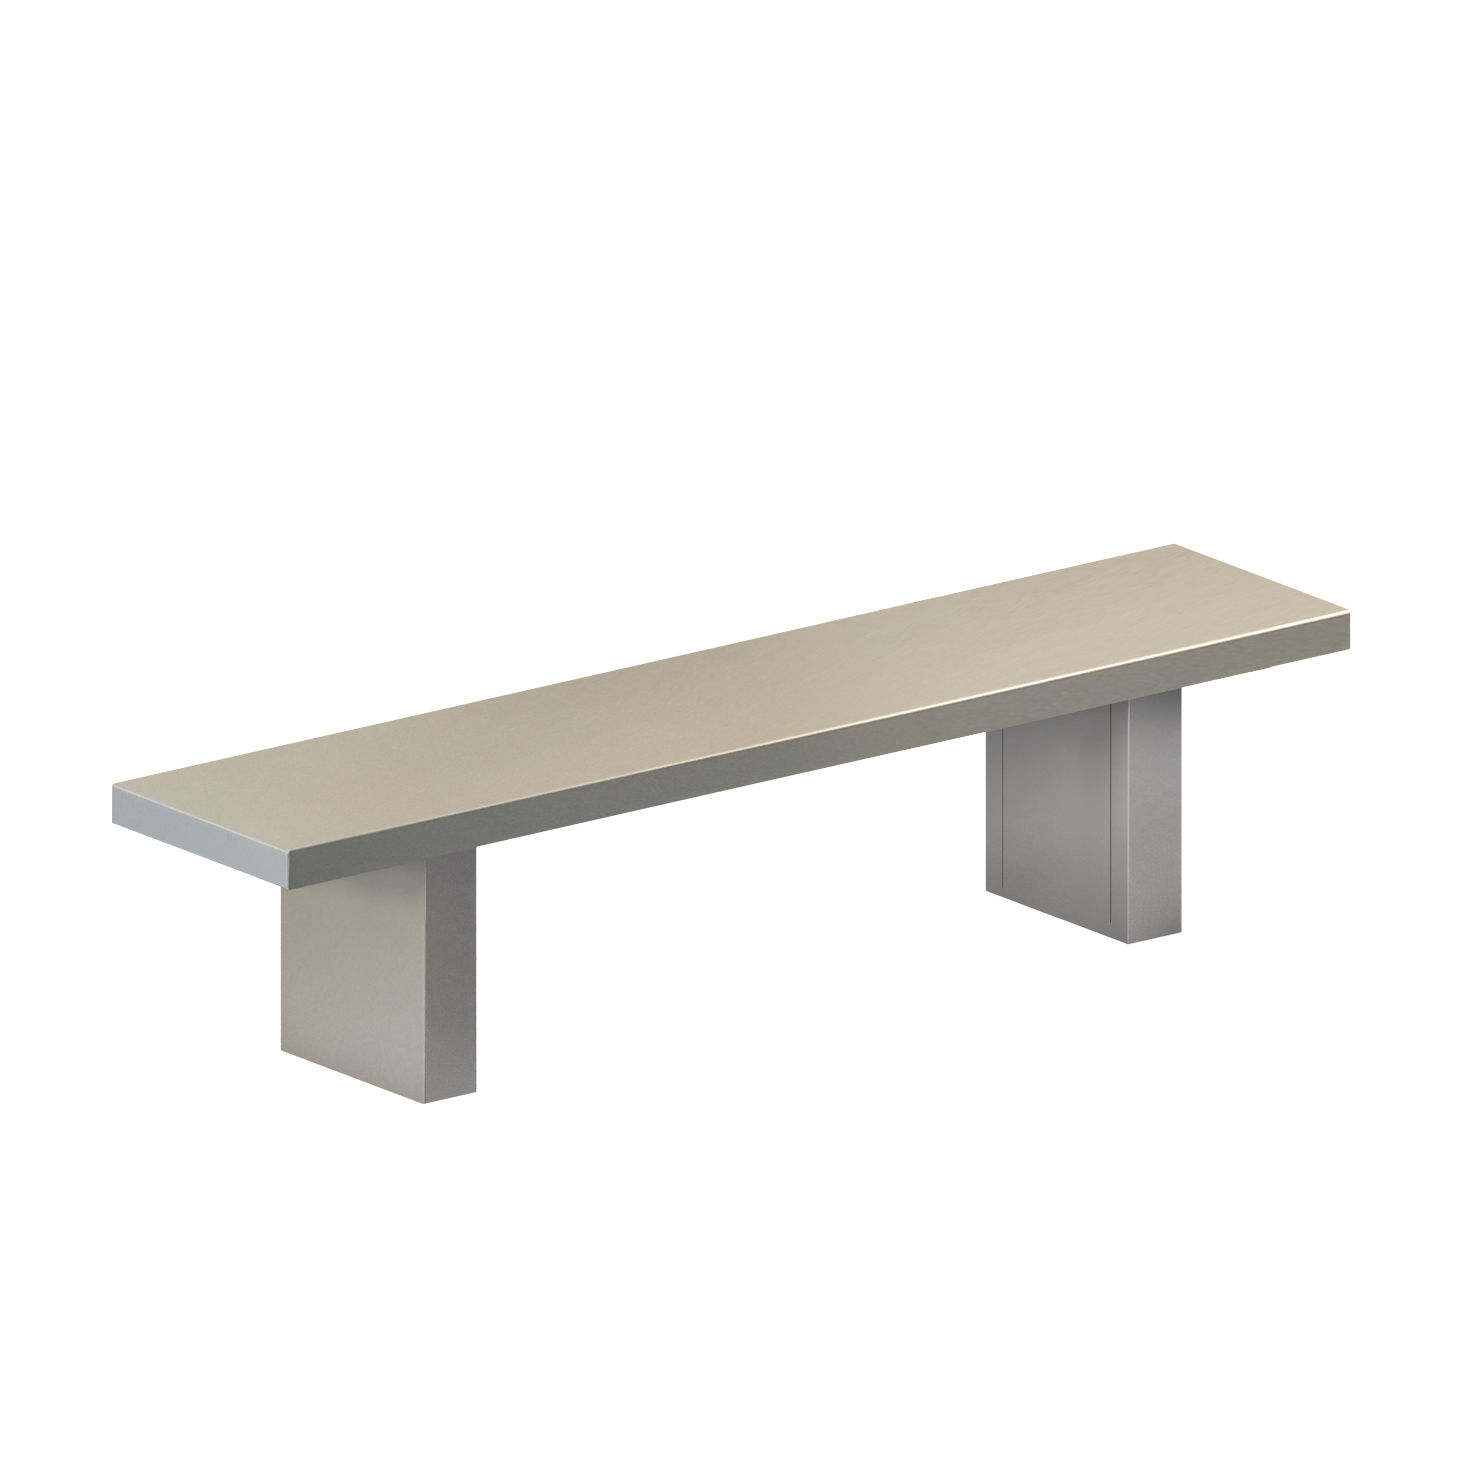 Furniture - Benches - Tommaso OUTDOOR Bench - / L 160 cm - Painted steel by Zeus - L 160 cm / Cement grey - Painted phosphated steel